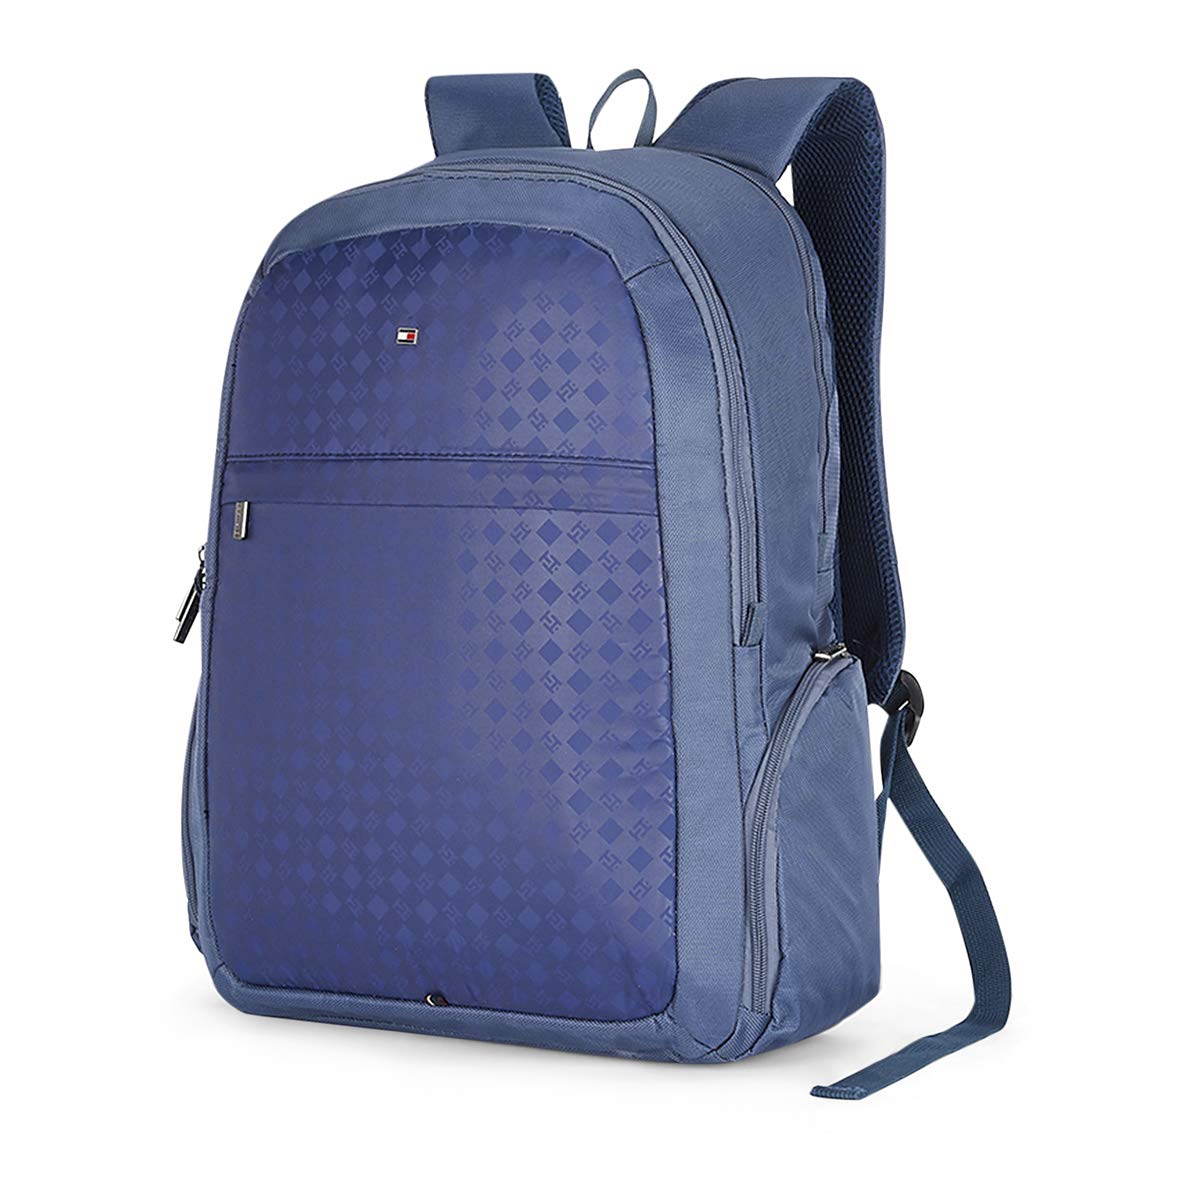 1113e0d5fb4 Tommy Hilfiger Professional Series 21.6 Ltrs Navy Laptop Backpack  (TH/PRO08LOGO): Amazon.in: Bags, Wallets & Luggage